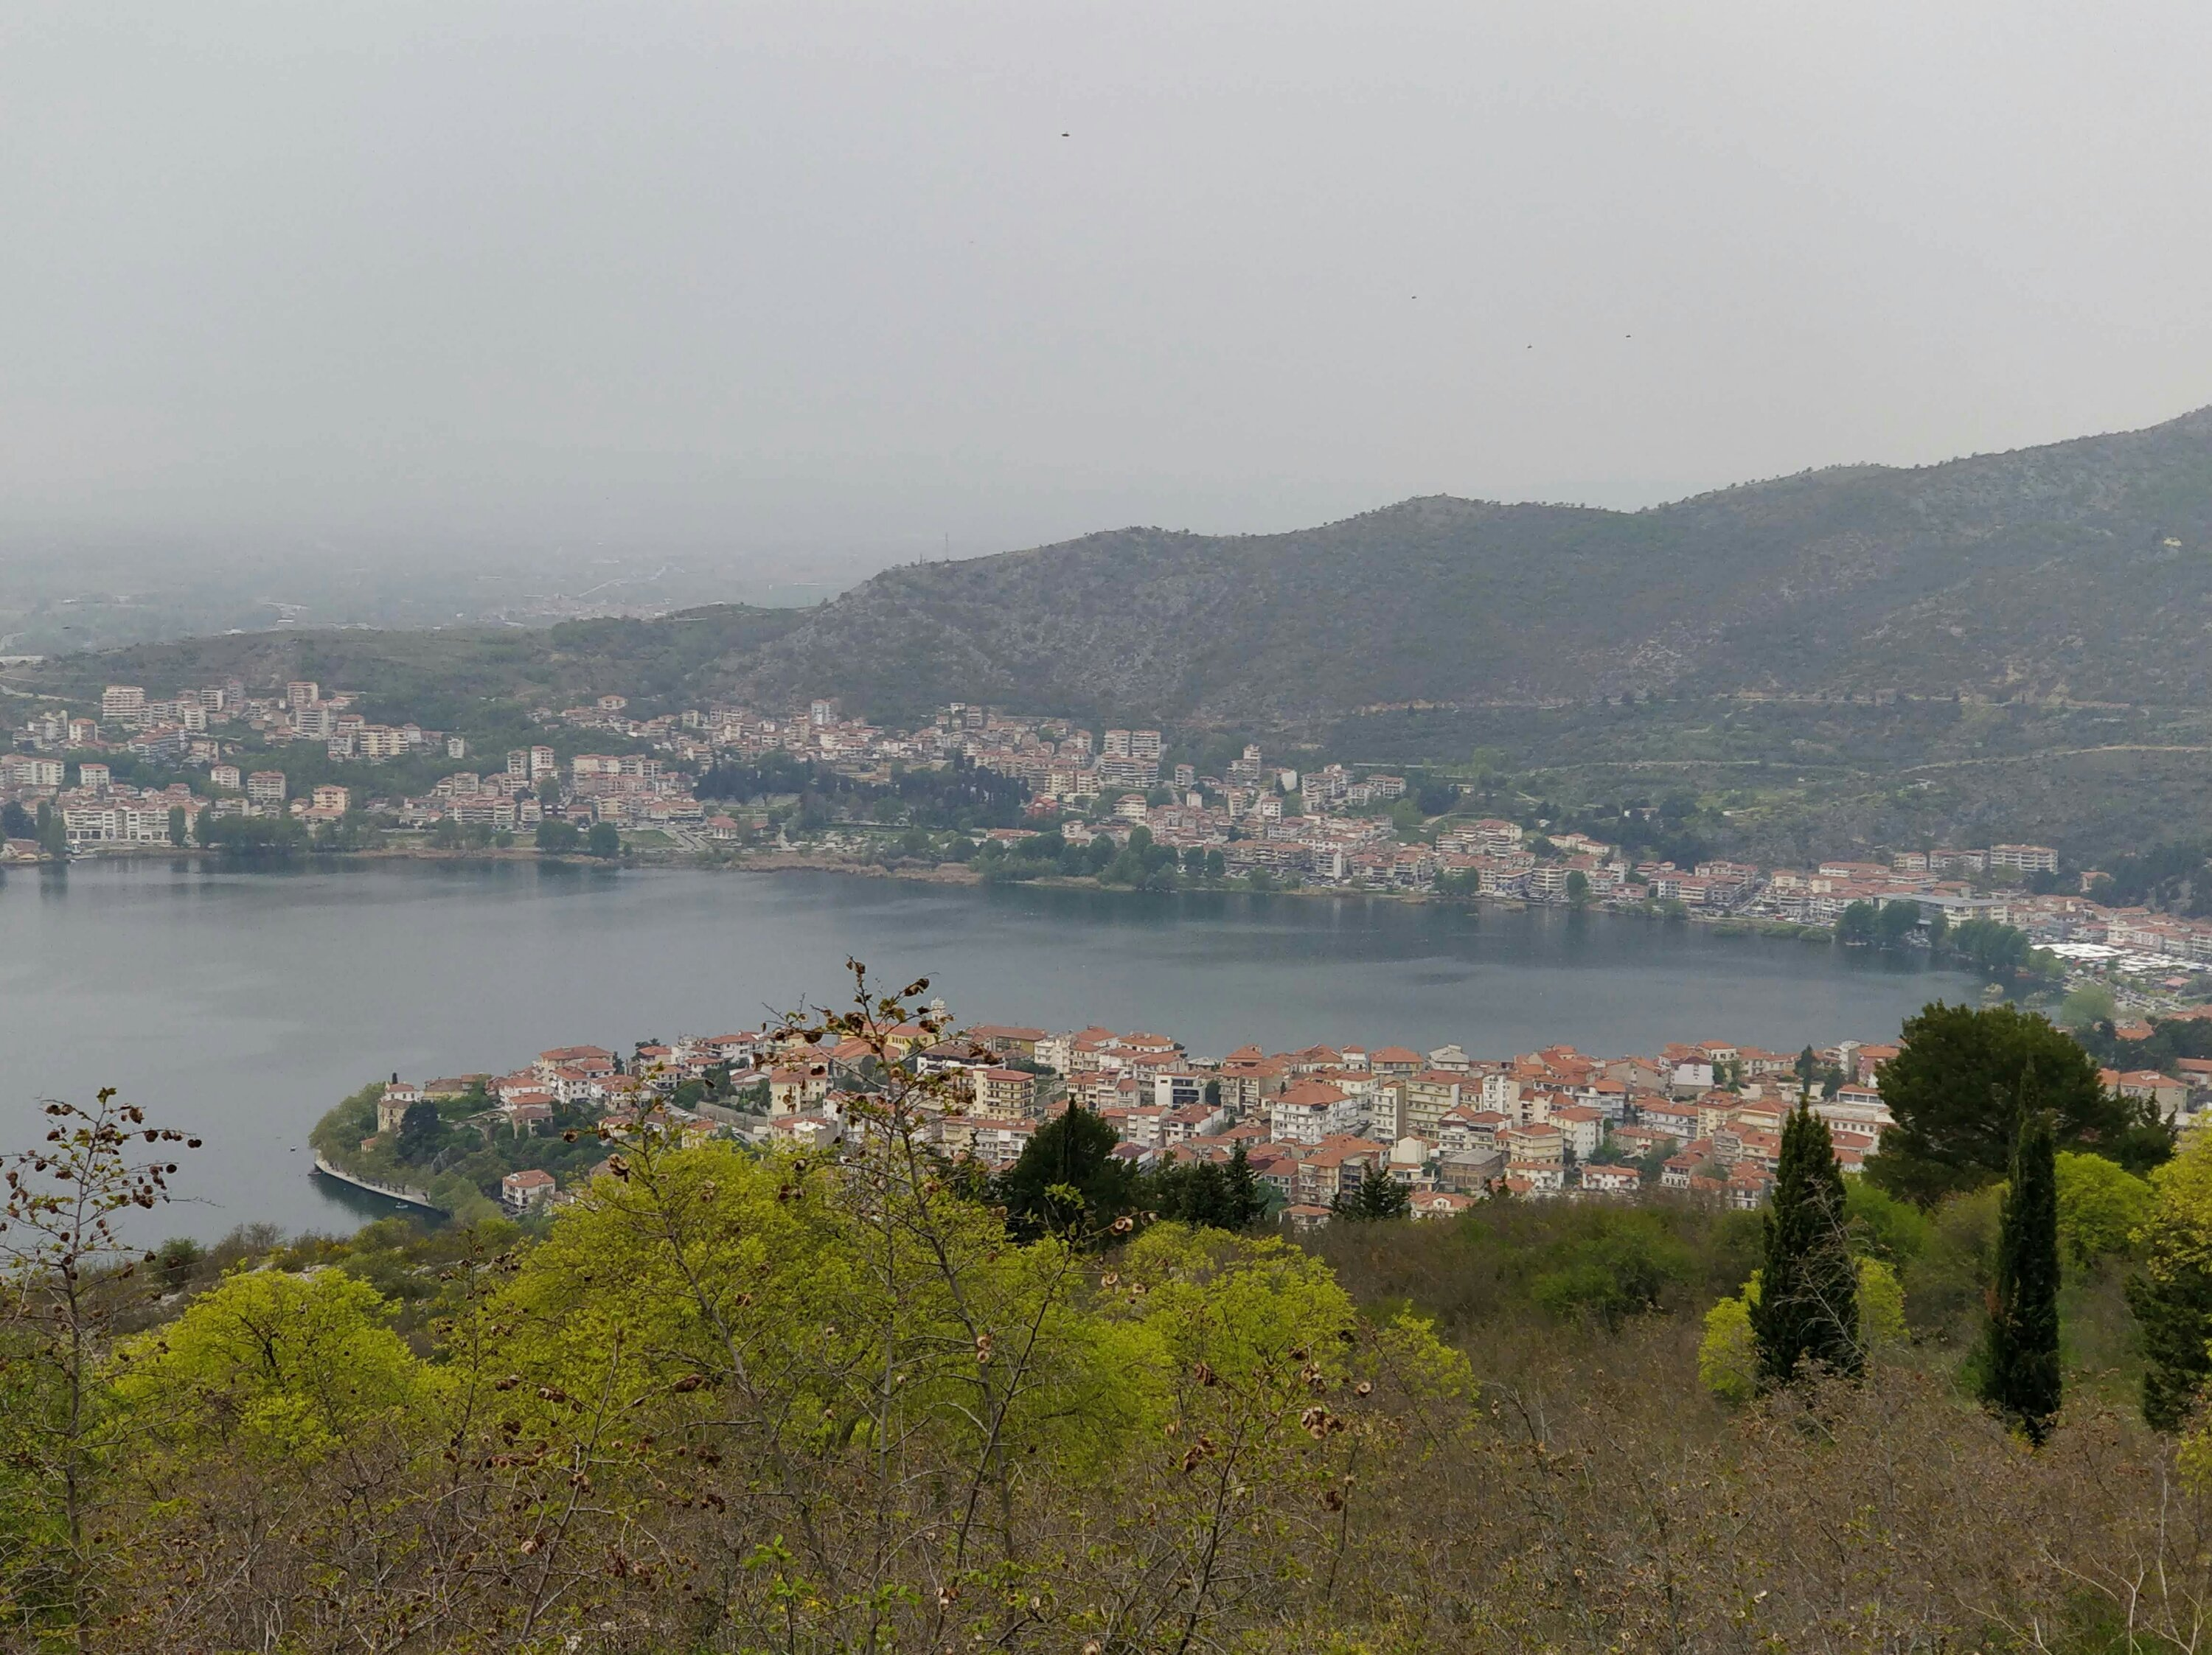 The city of Kastoria in Northern Greece, photograph taken from the hill of Profitis Ilias